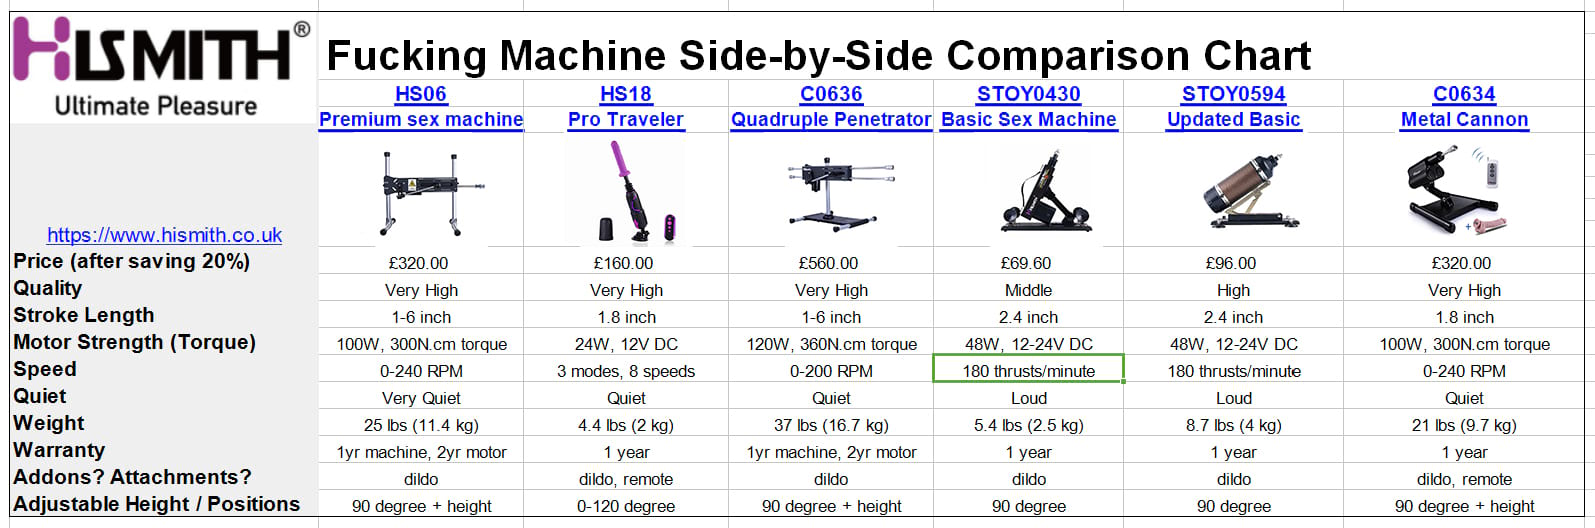 Side-by-side comparison chart of sex machines at Hismith